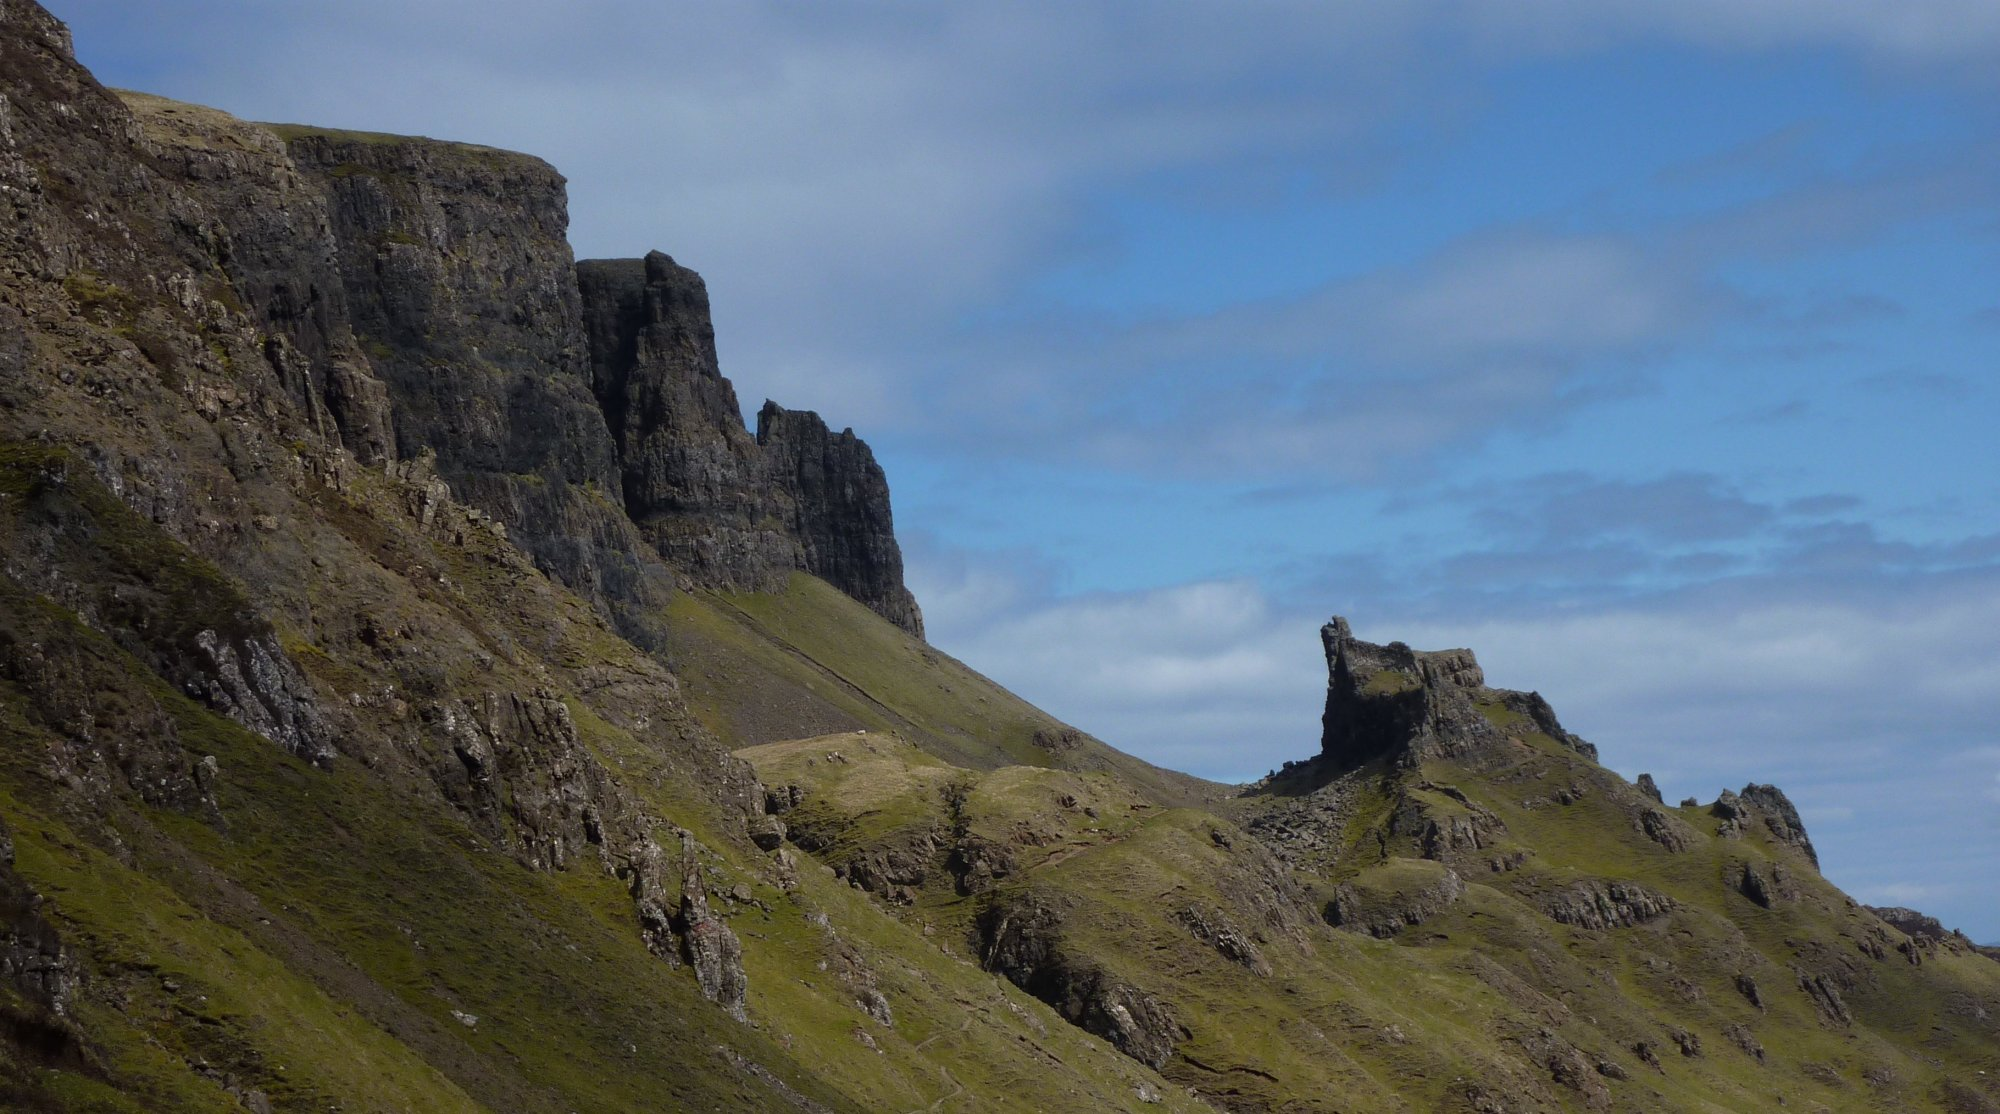 Along the lower Quiraing path the scenery is breathtaking and the path is great